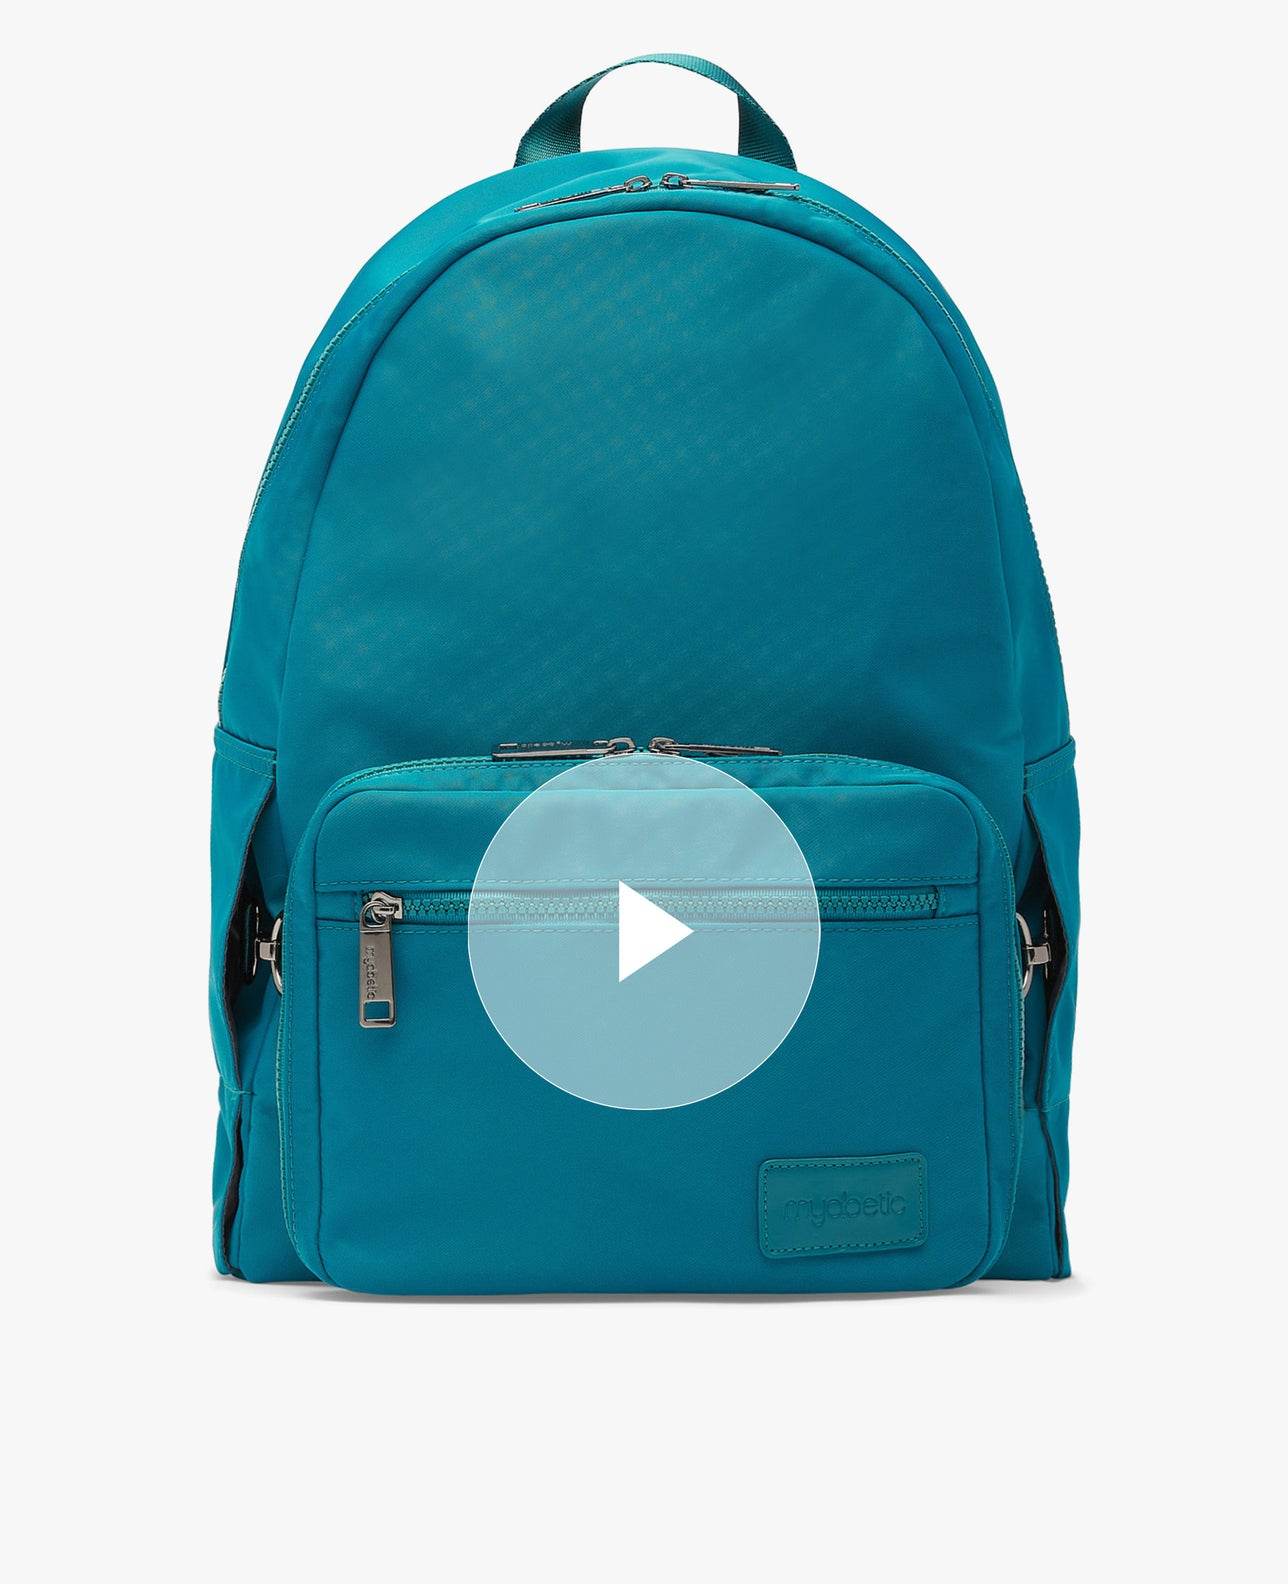 color:teal nylon  https://player.vimeo.com/video/525206309